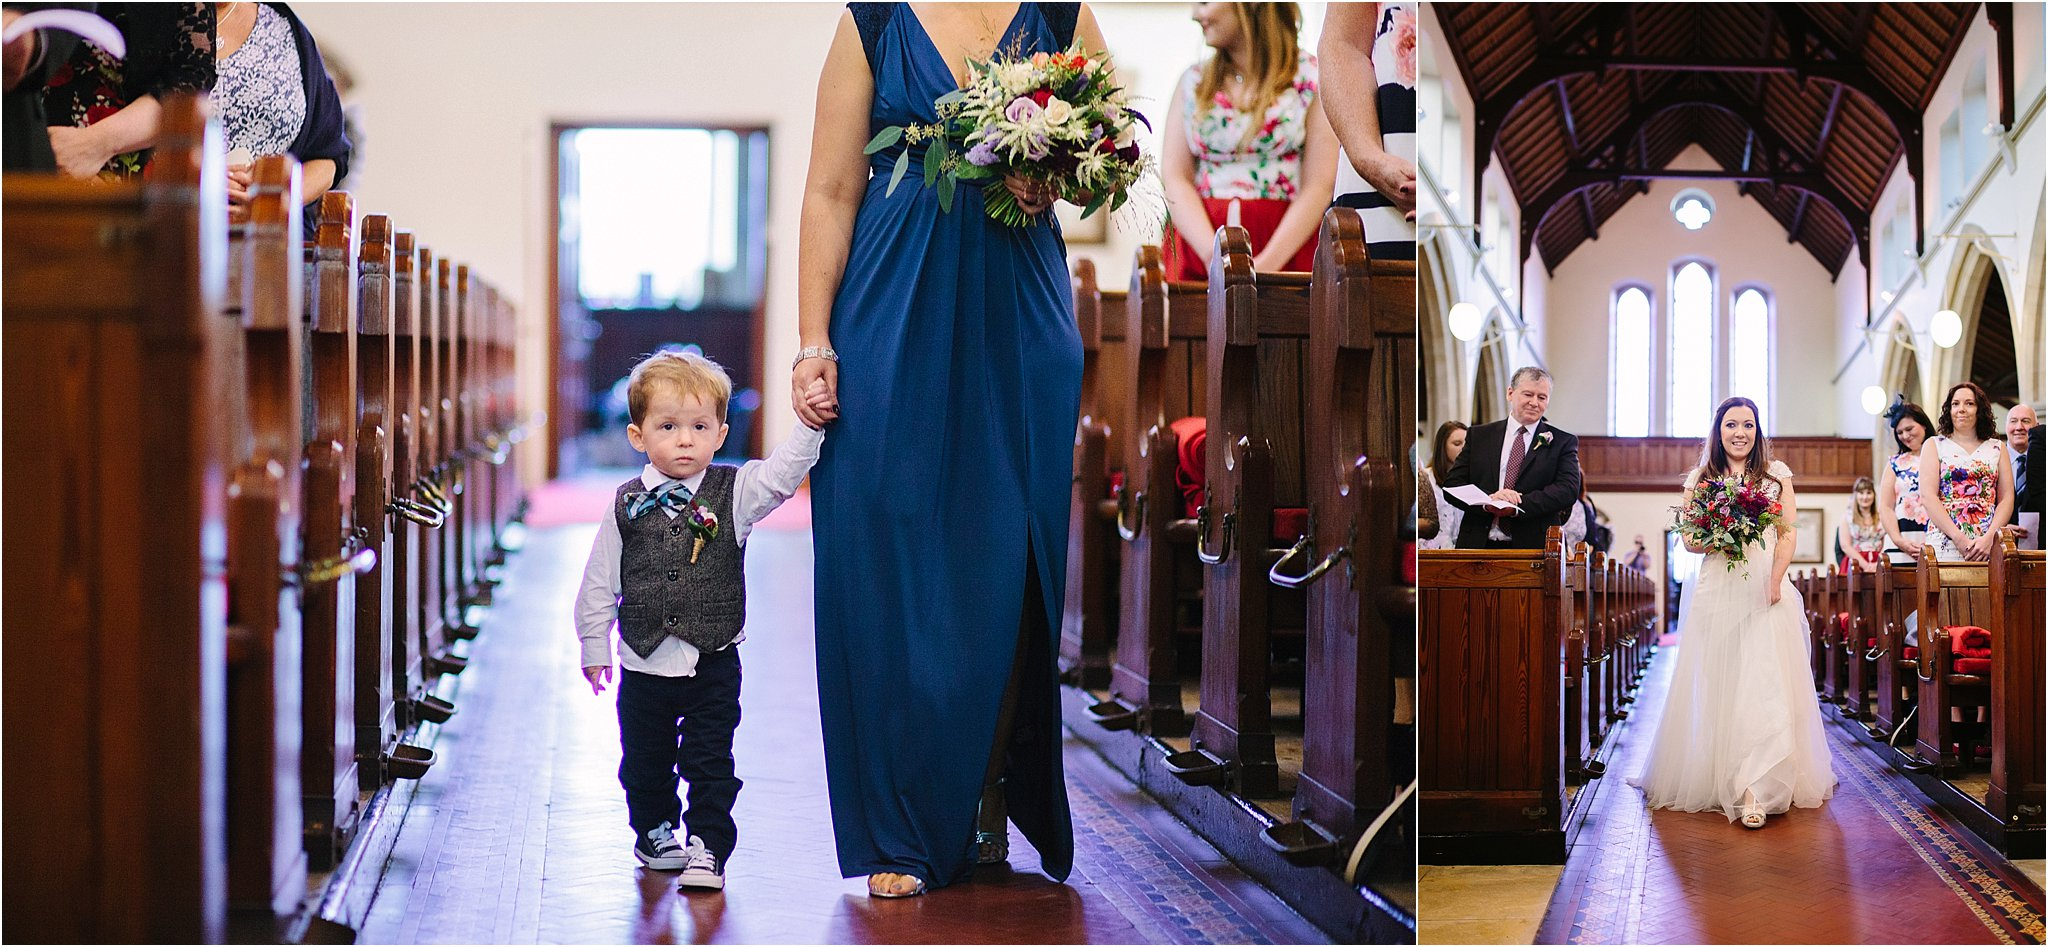 Wild Atlantic Way Wedding at Redcastle Oceanfront Hotel, Donegal